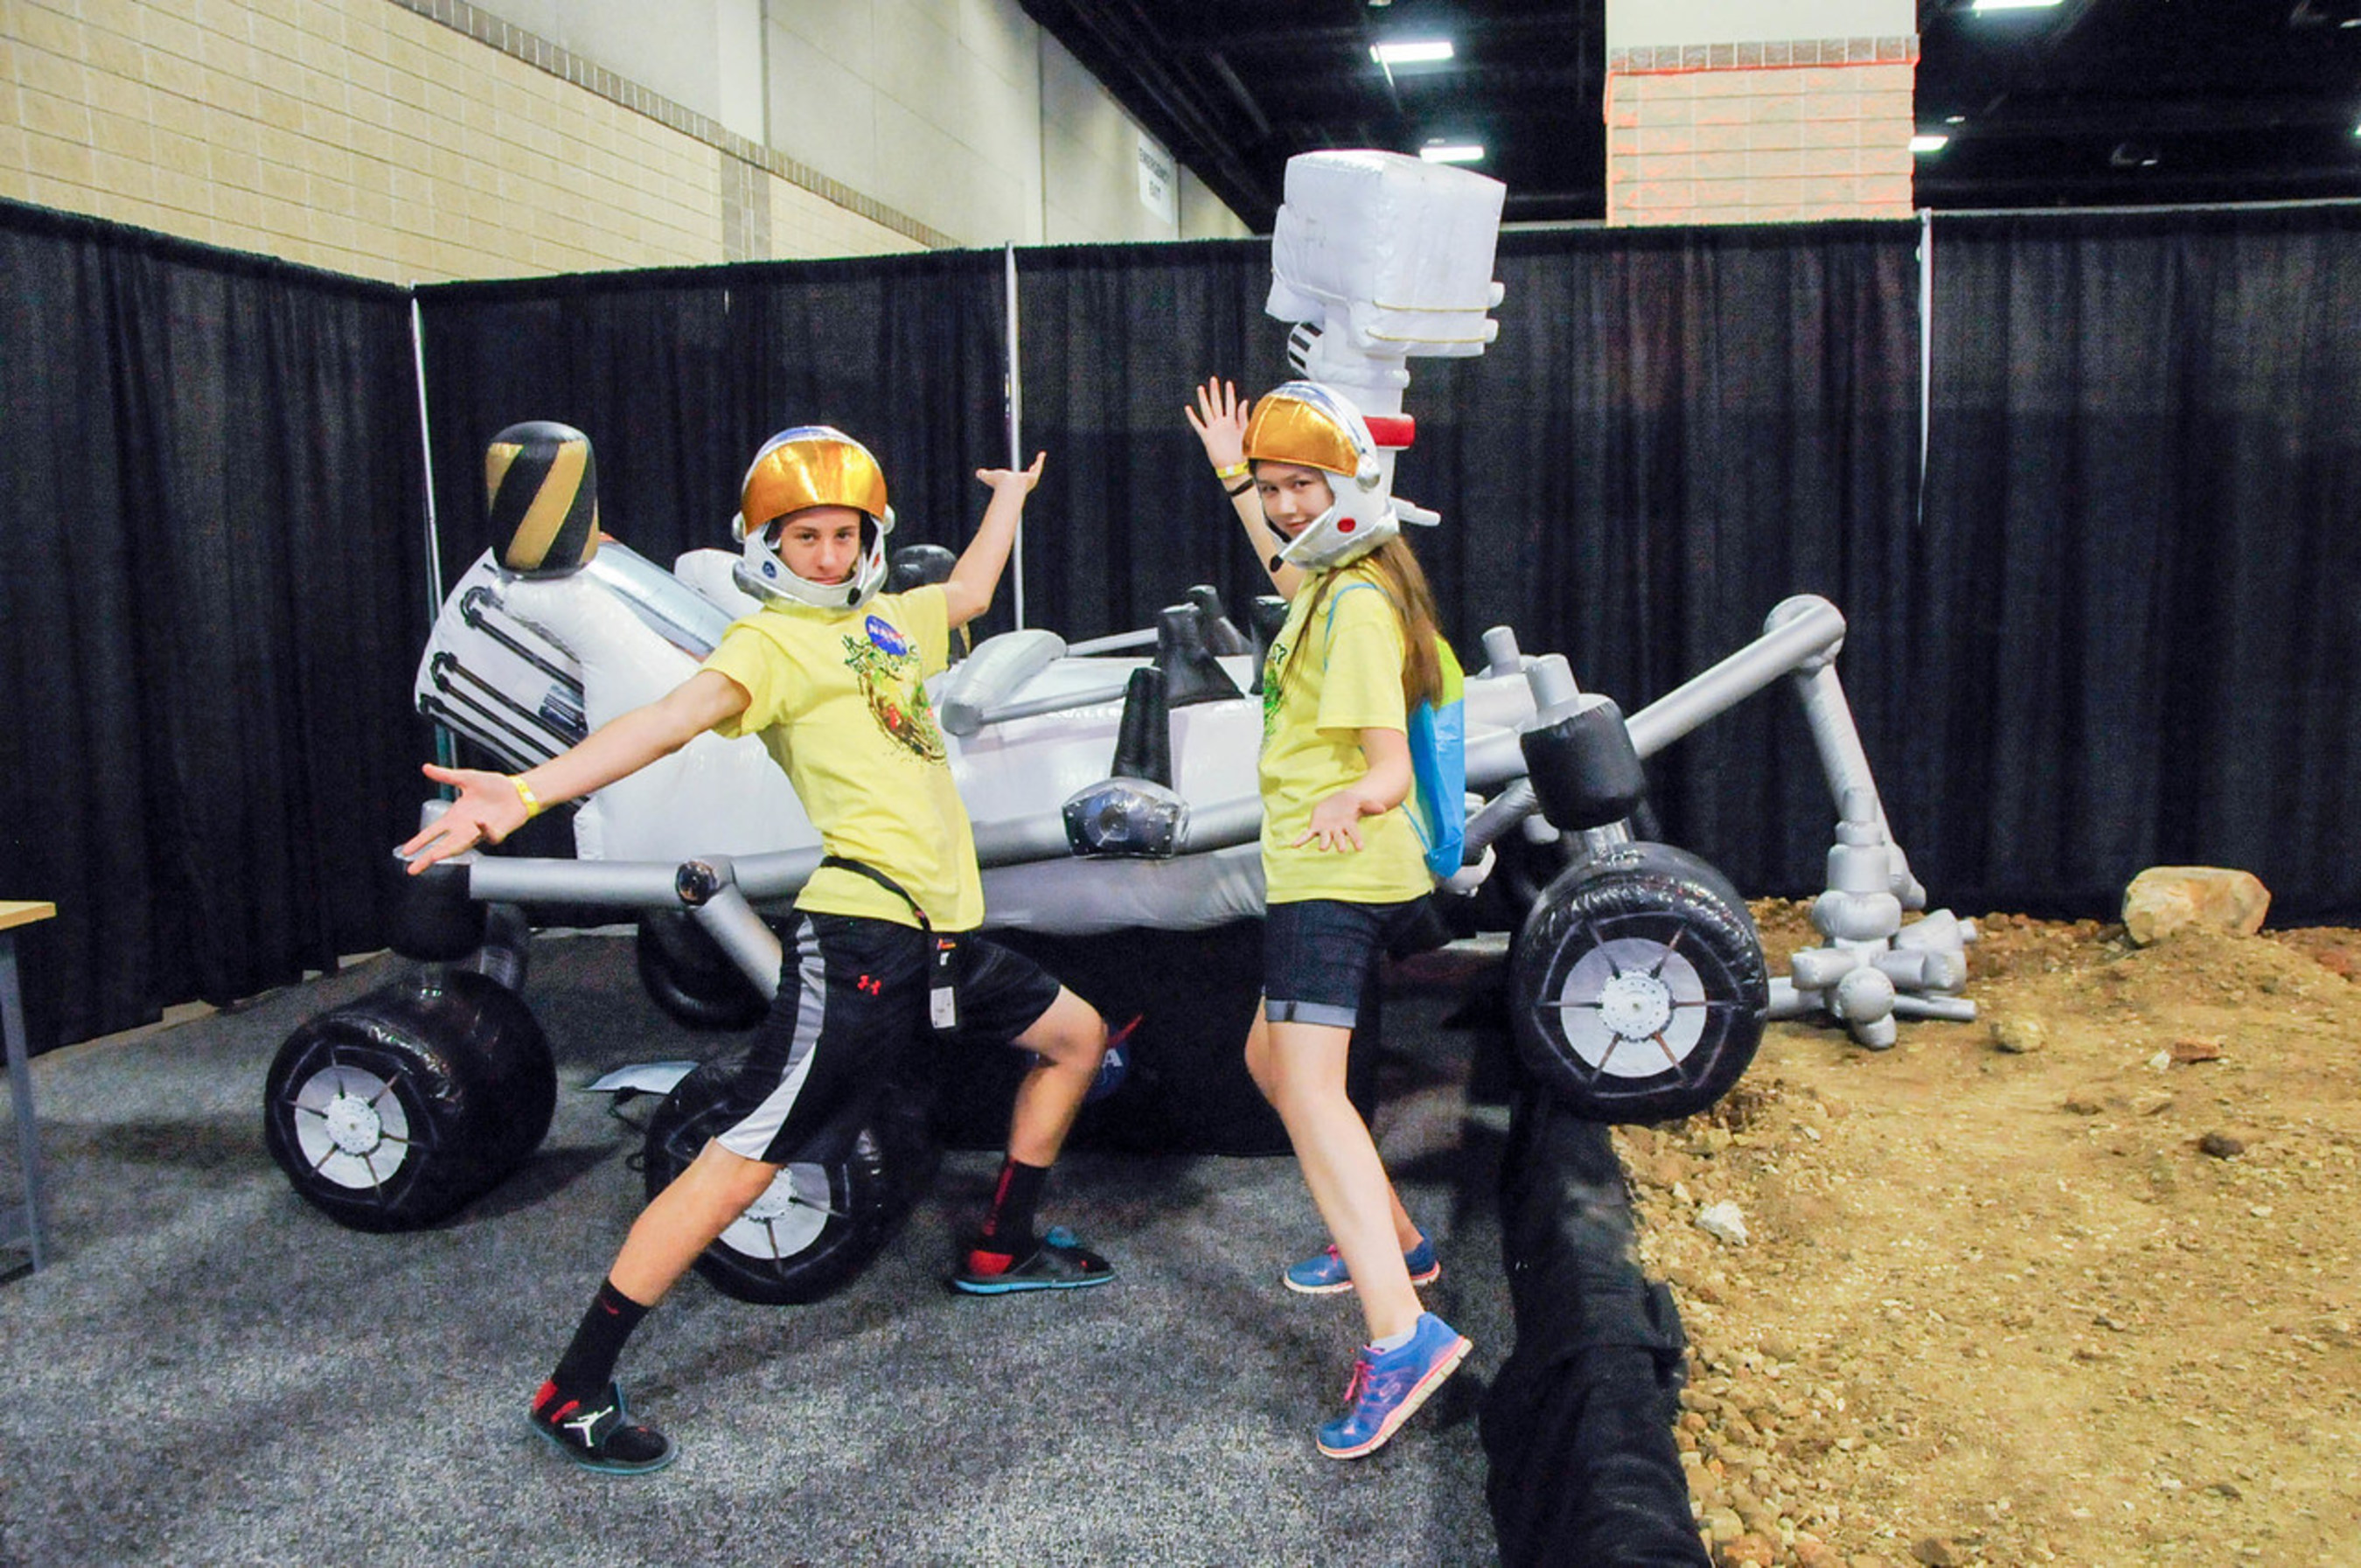 As part of its mission to inspire the next generation to pursue careers in the STEM fields, Destination Imagination's 2016 Global Finals will feature five space science organizations.